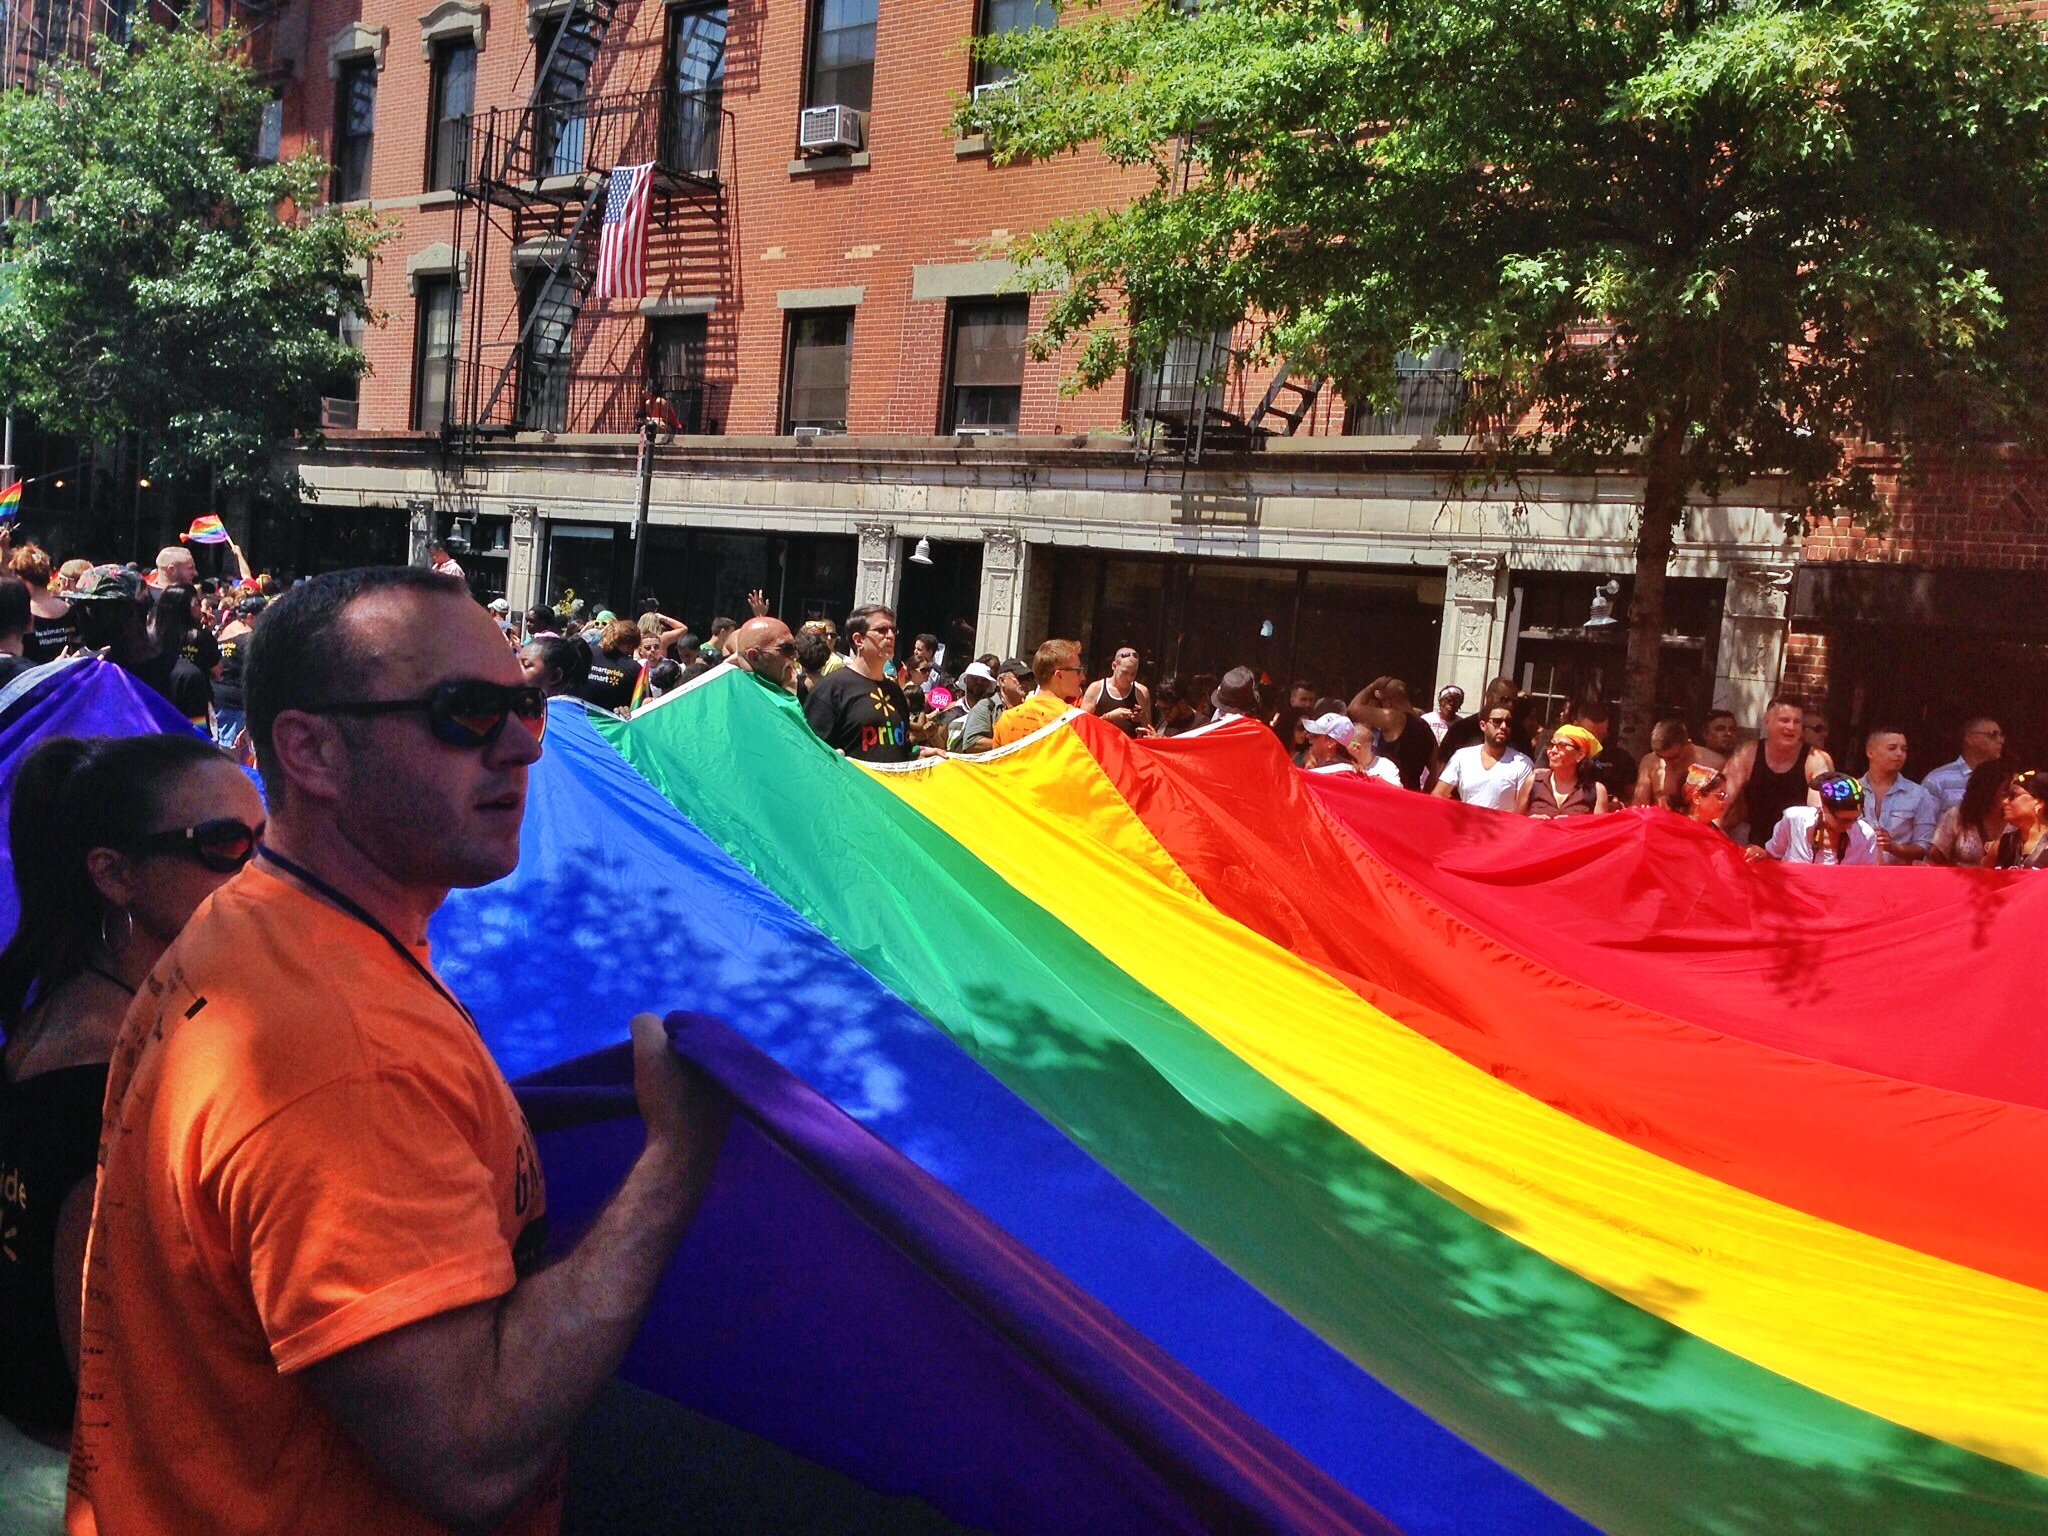 People carrying a giant rainbow flag in New York City's Pride Parade